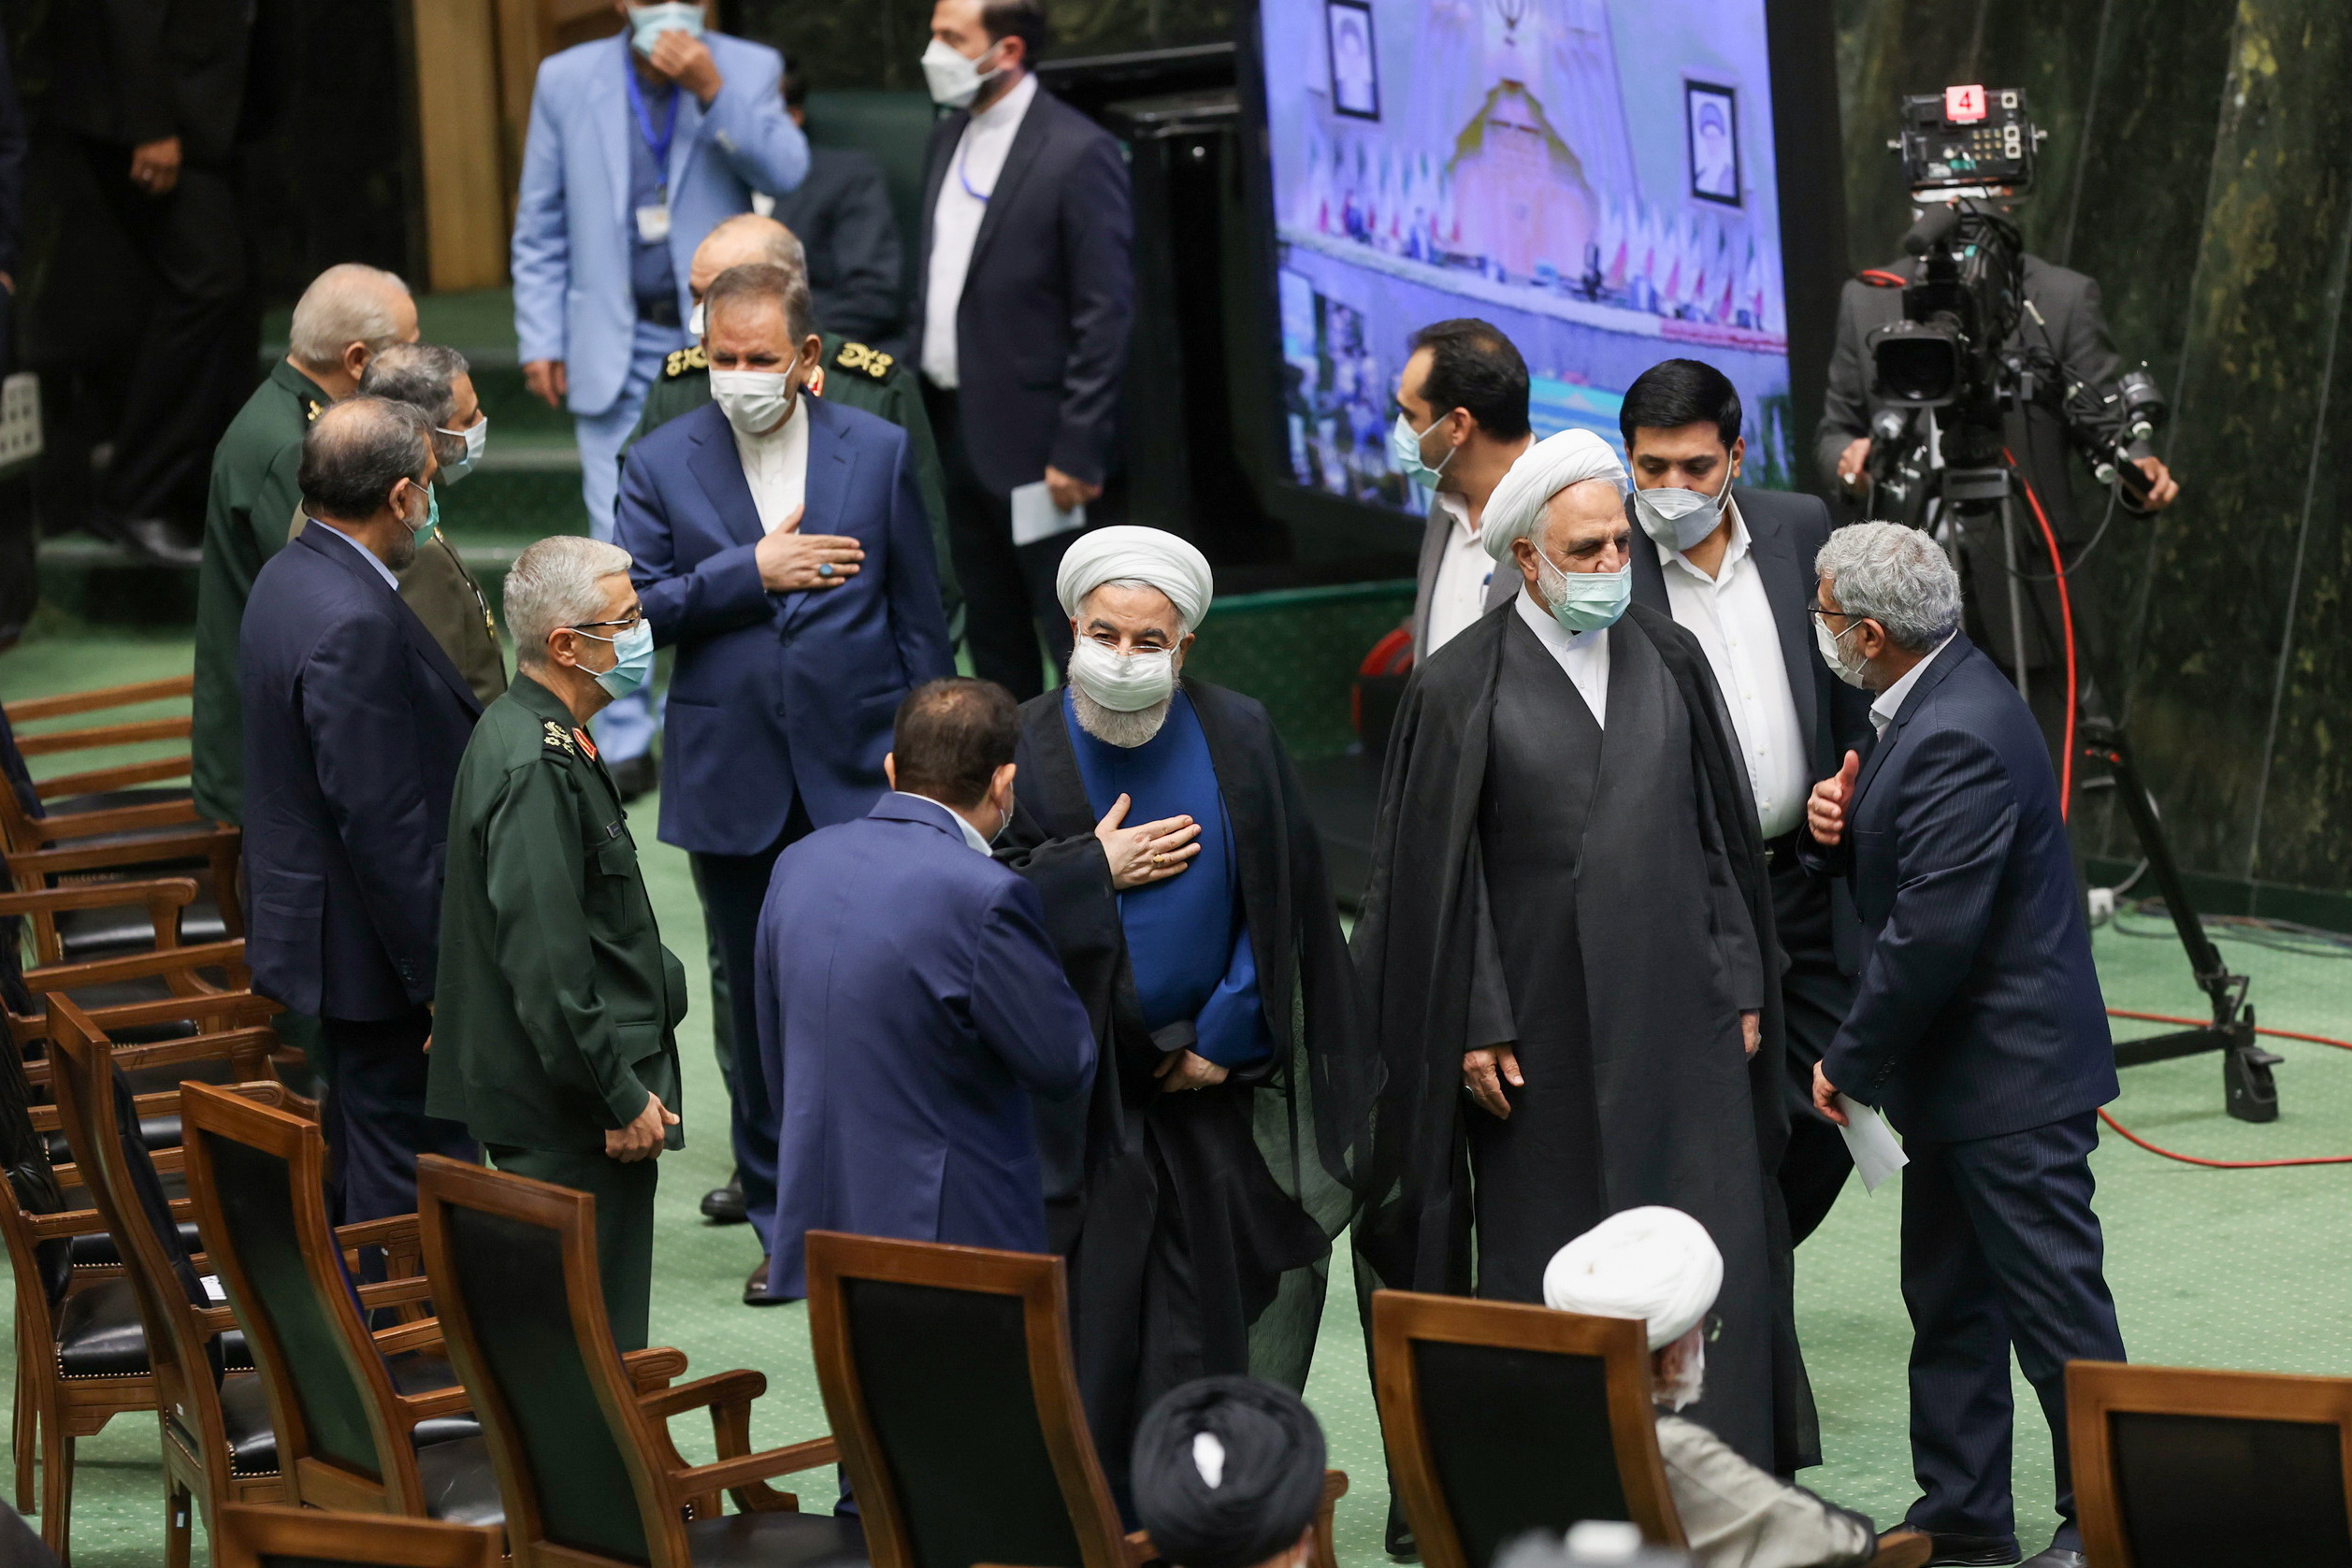 Former Iranian president Hassan Rouhani attends a swearing-in ceremony for Iran's new President Ebrahim Raisi at the parliament in Tehran, Iran, August 5, 2021. Majid Asgaripour/WANA (West Asia News Agency)/ via REUTERS